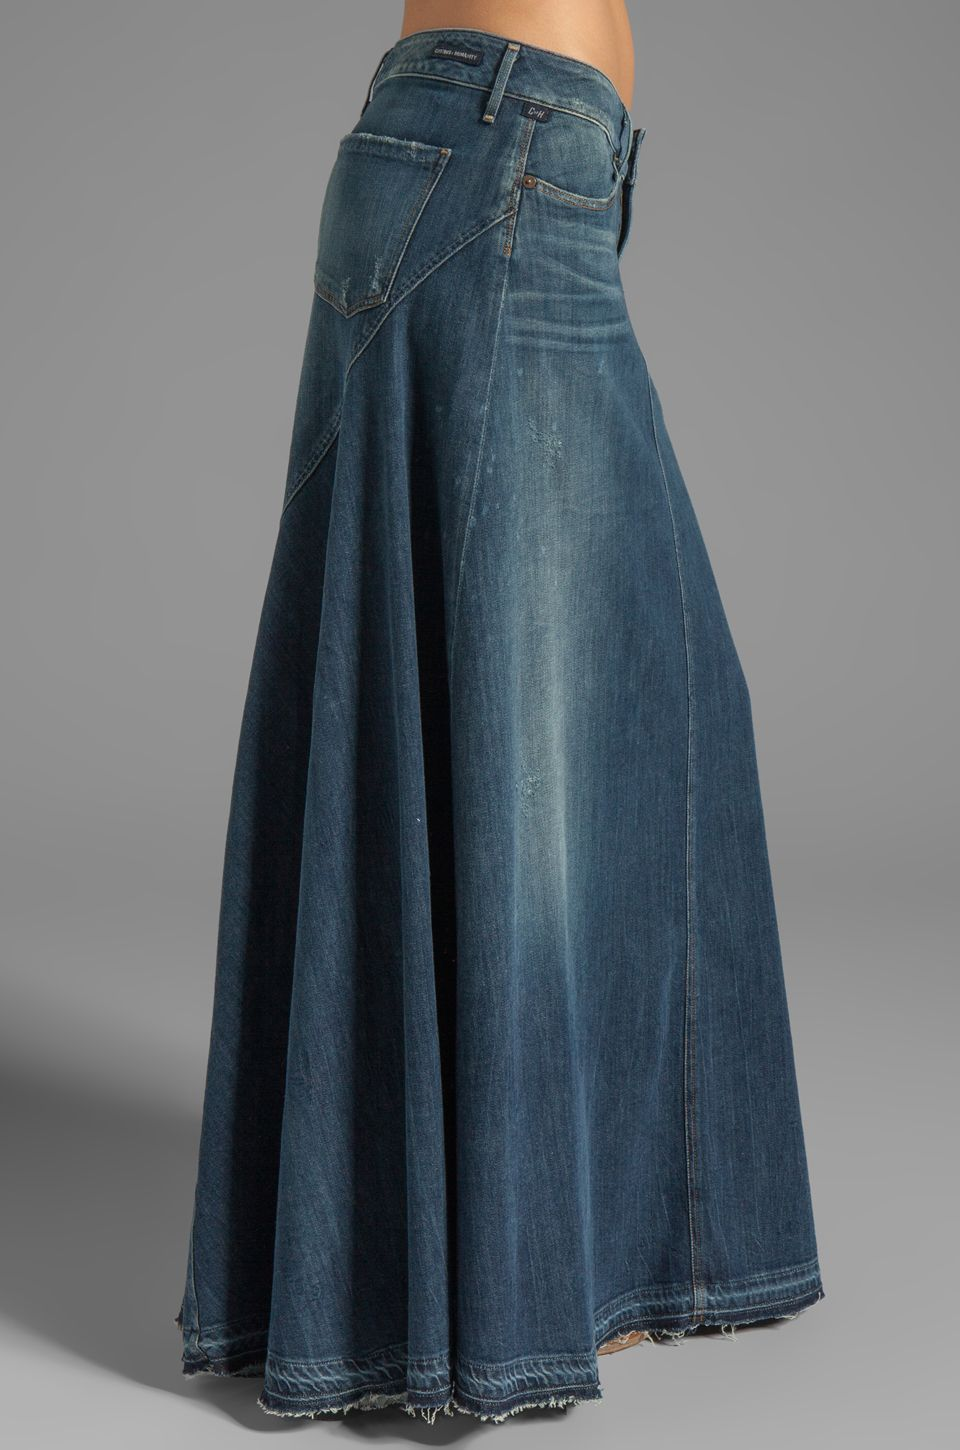 Citizens of humanity jeans anja maxi skirt in dizzy revolve